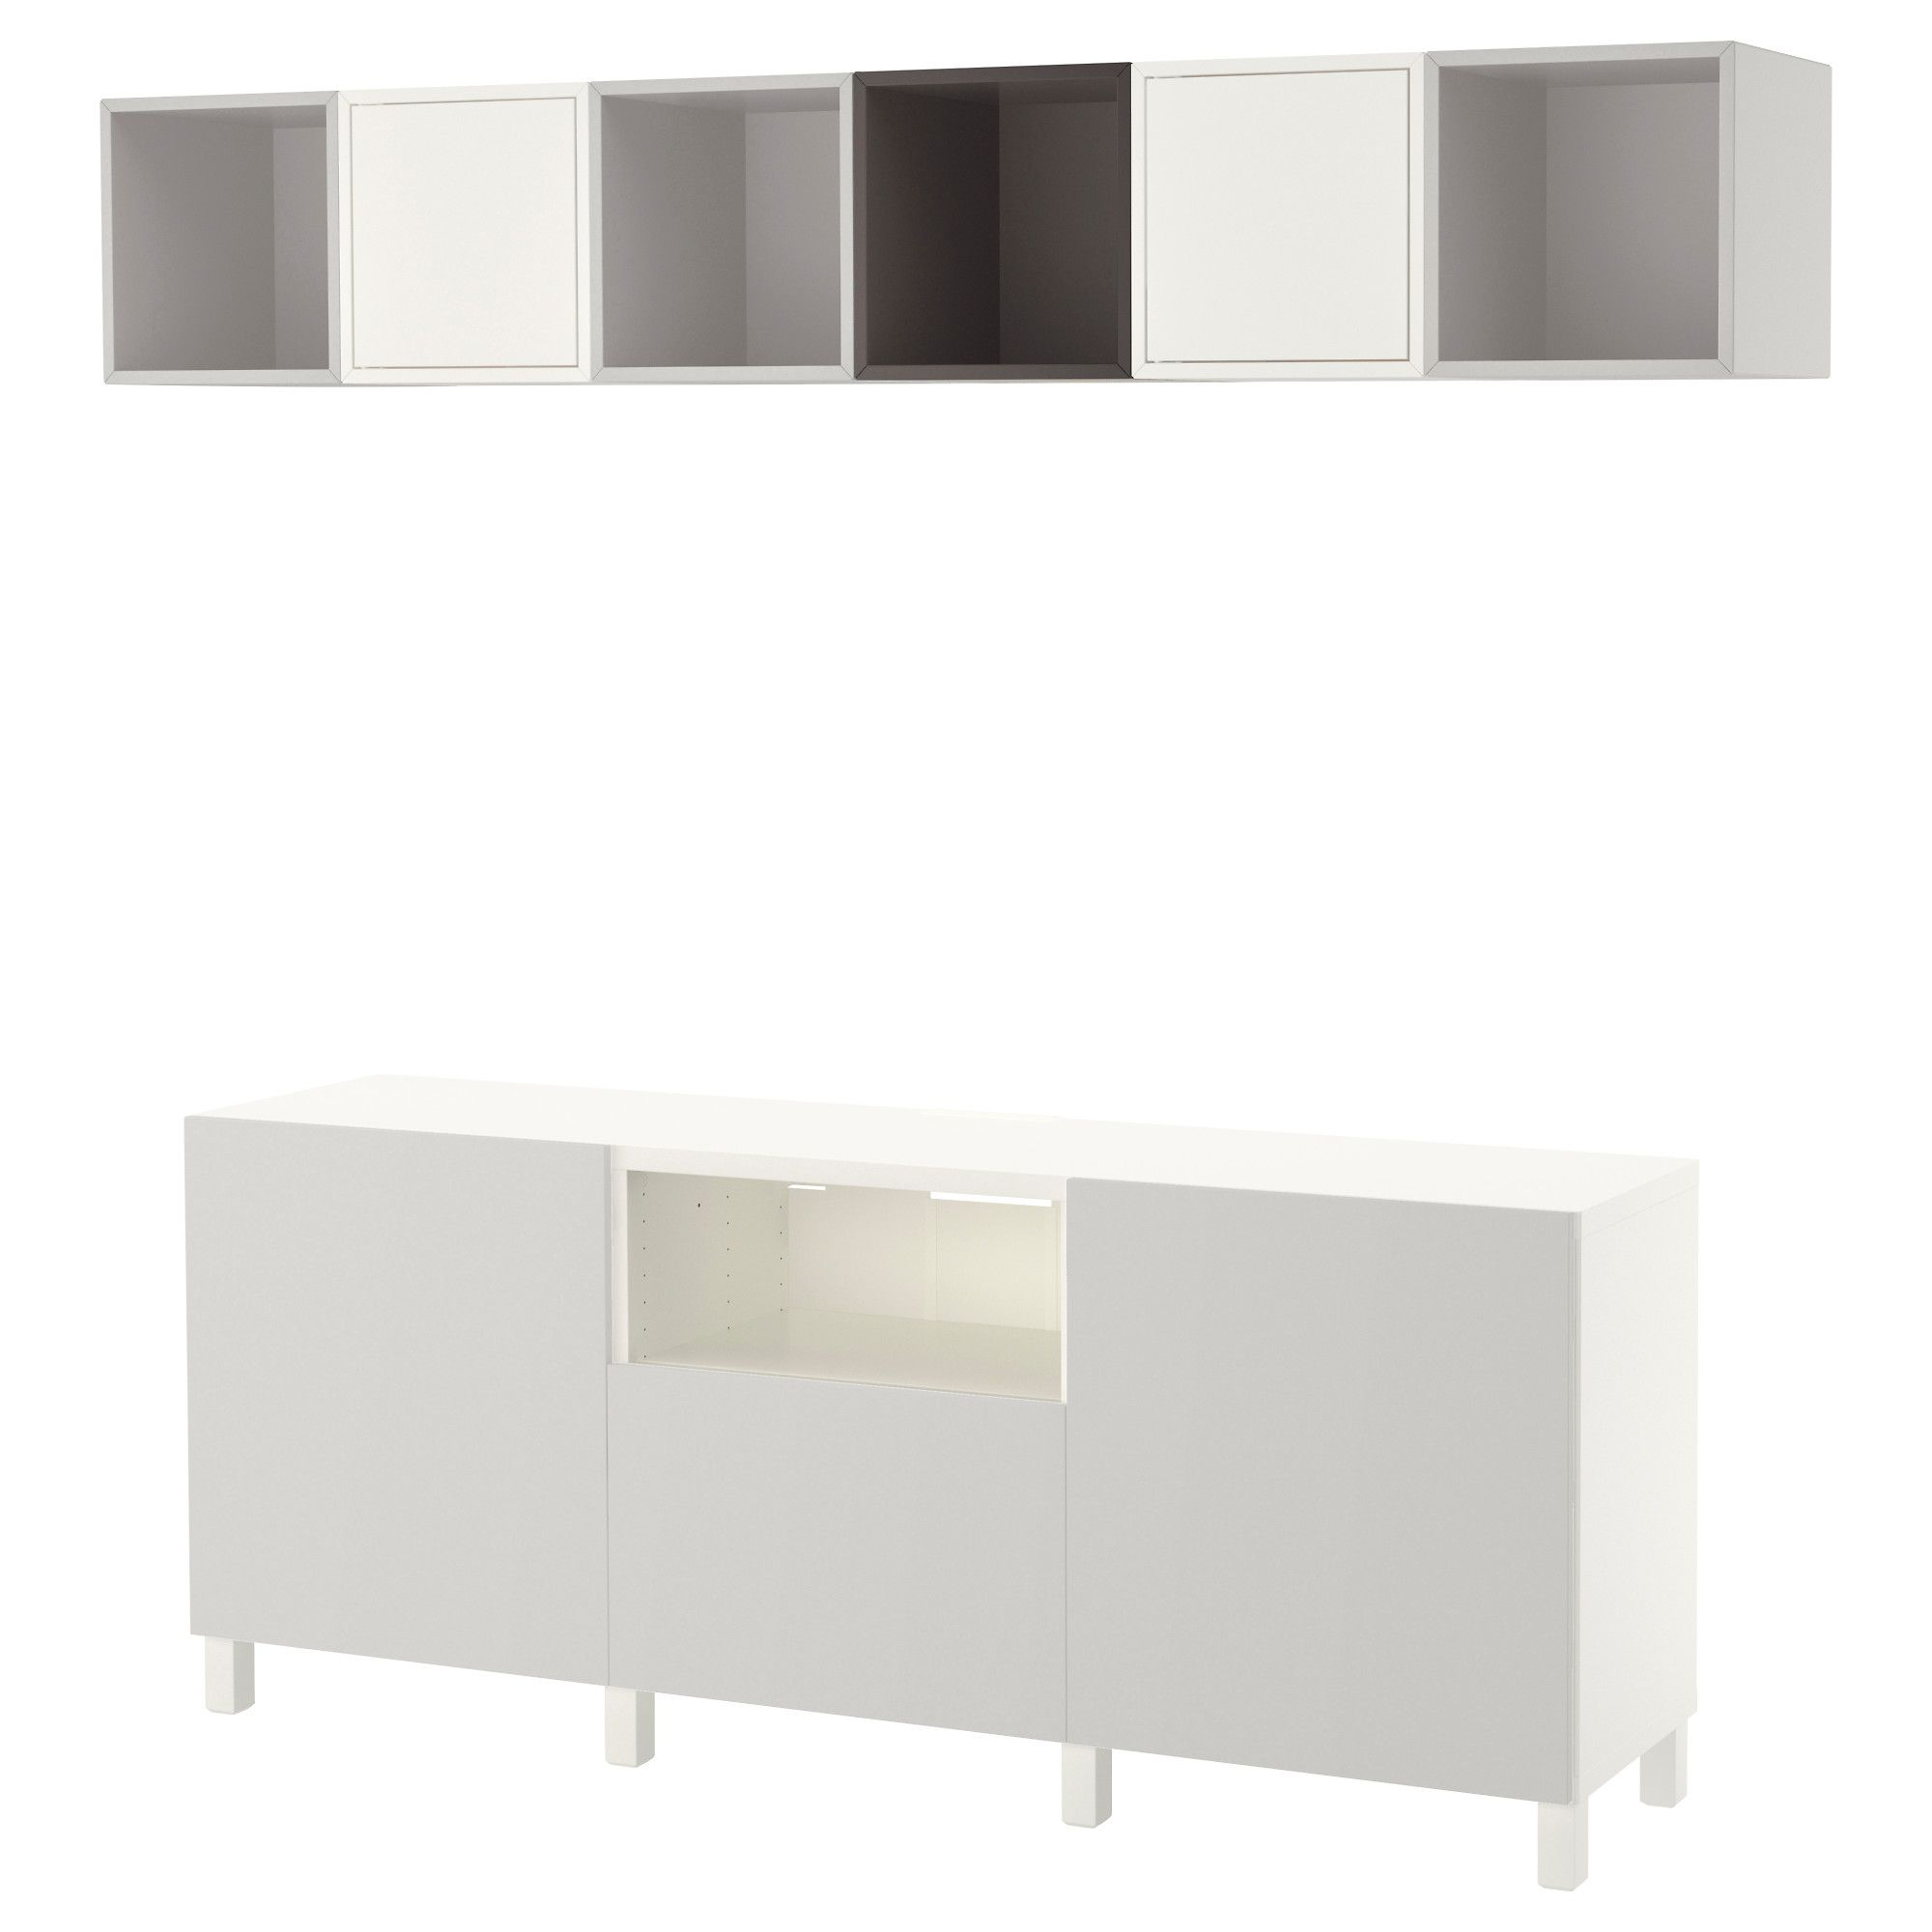 Schrank Regal Kombination Sideboard Regal Kombination Sideboard Regal Kombination